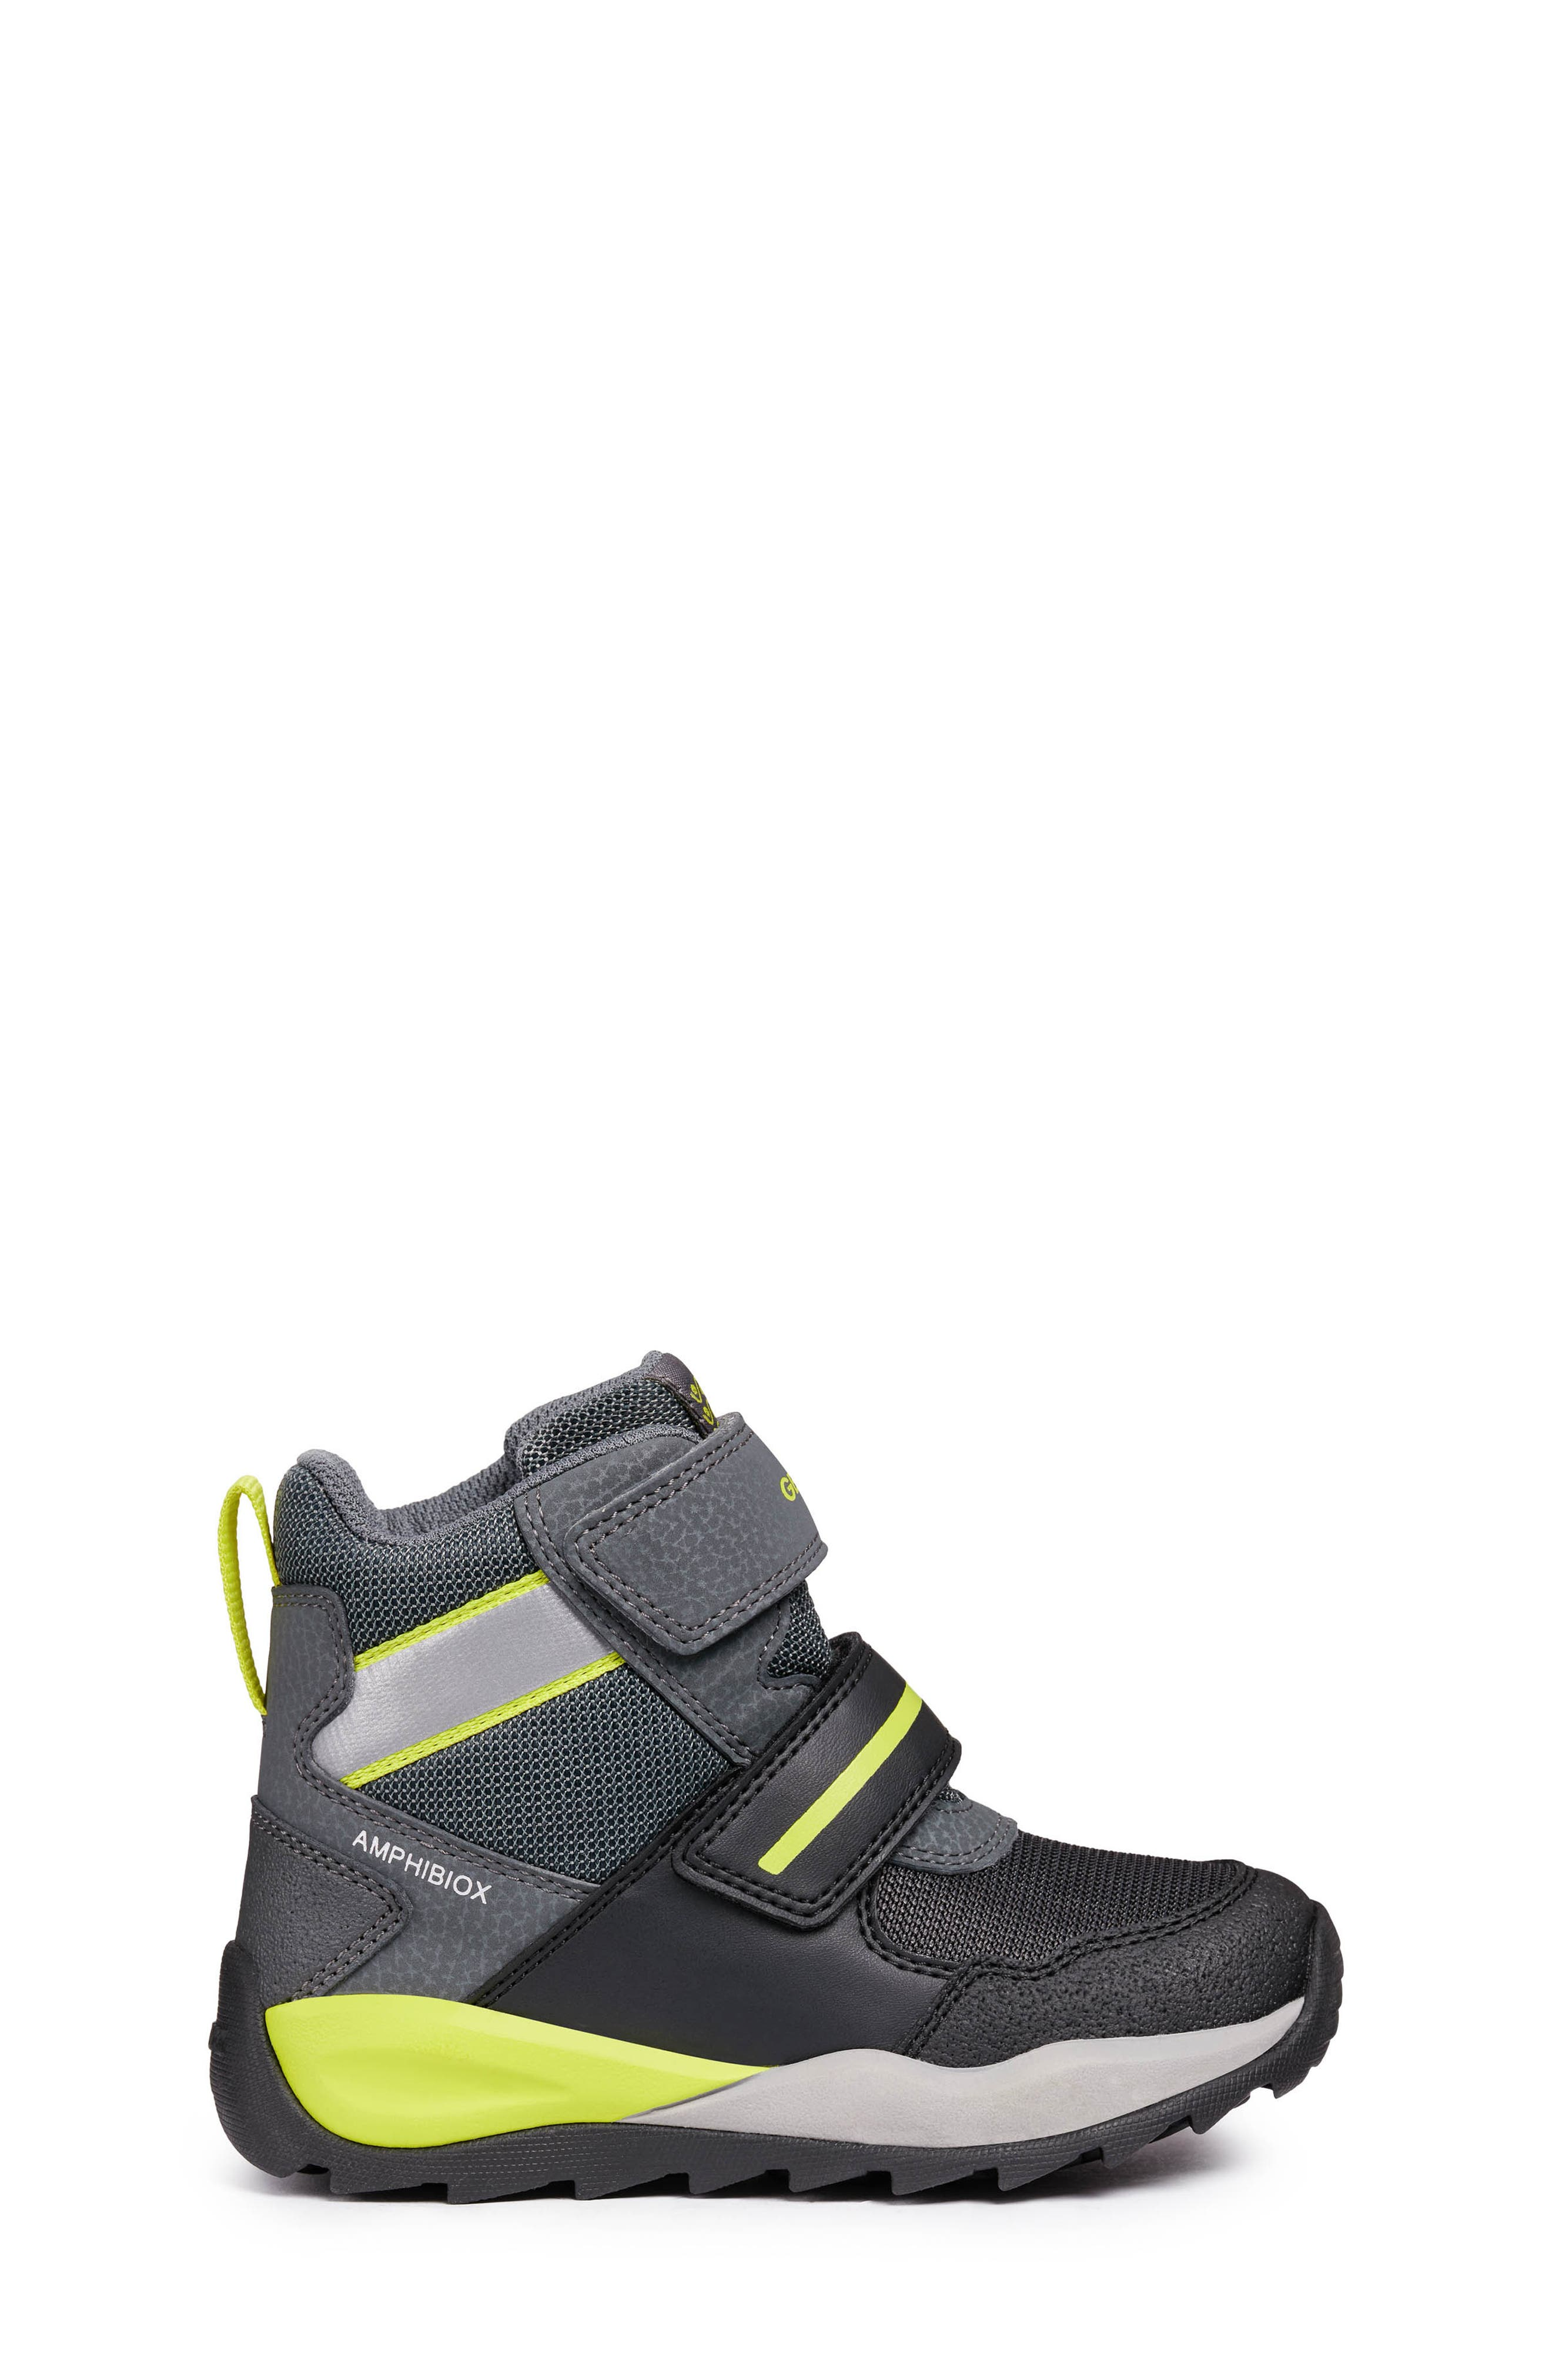 GEOX, Orizont ABX Waterproof Boot, Alternate thumbnail 3, color, BLACK/ LIME